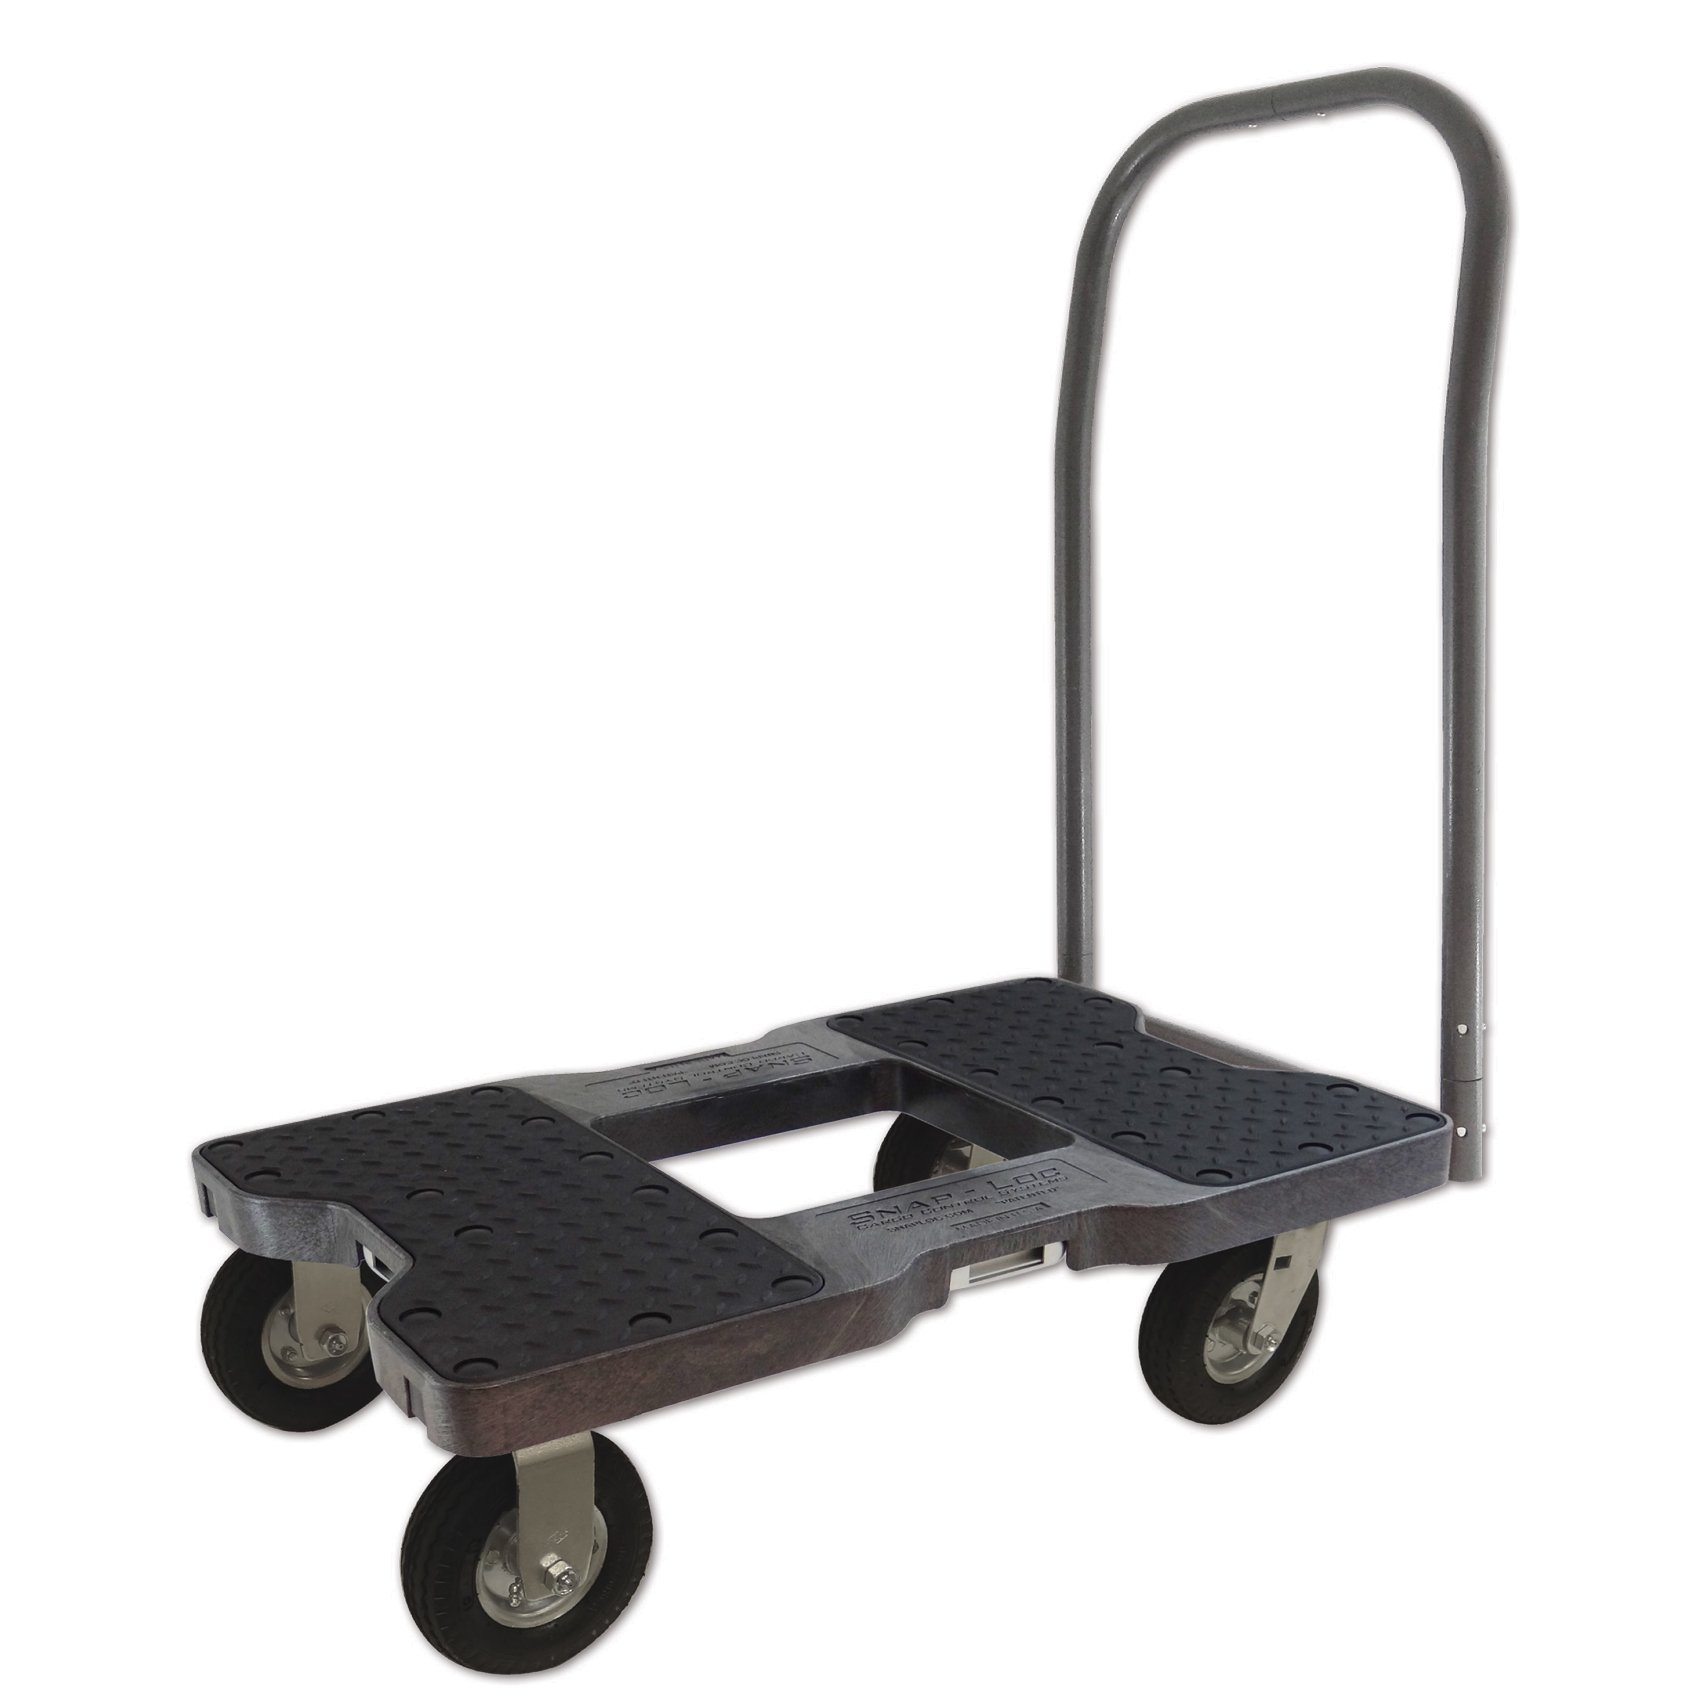 SNAP-LOC AIR-RIDE PUSH CART DOLLY BLACK with 1500 lb Capacity, Steel Frame, 6 inch Casters, Push Bar and optional E-Strap Attachment